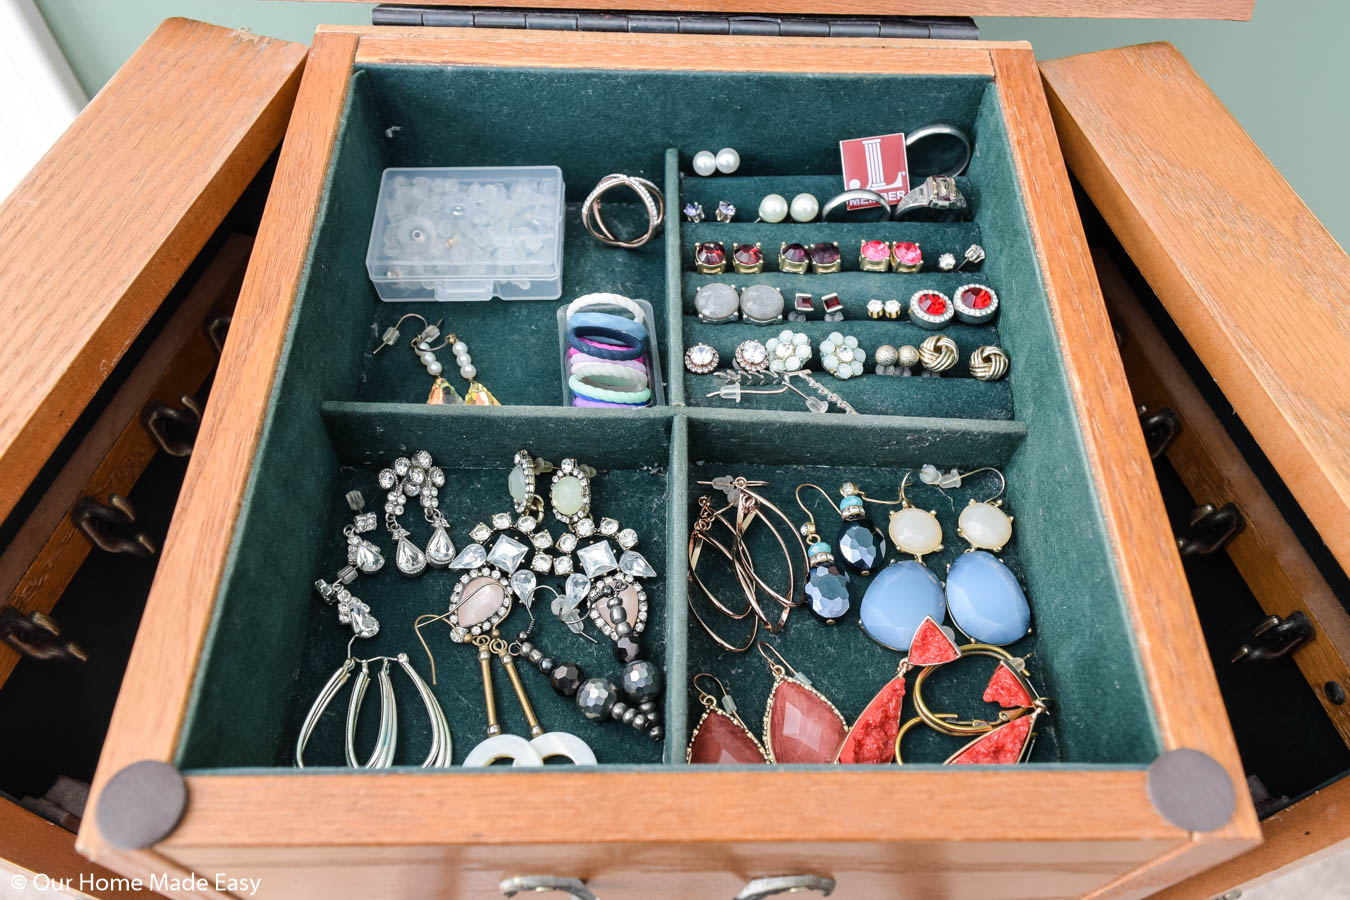 I pared down on my earrings and only kept the earrings and rings that I wore often